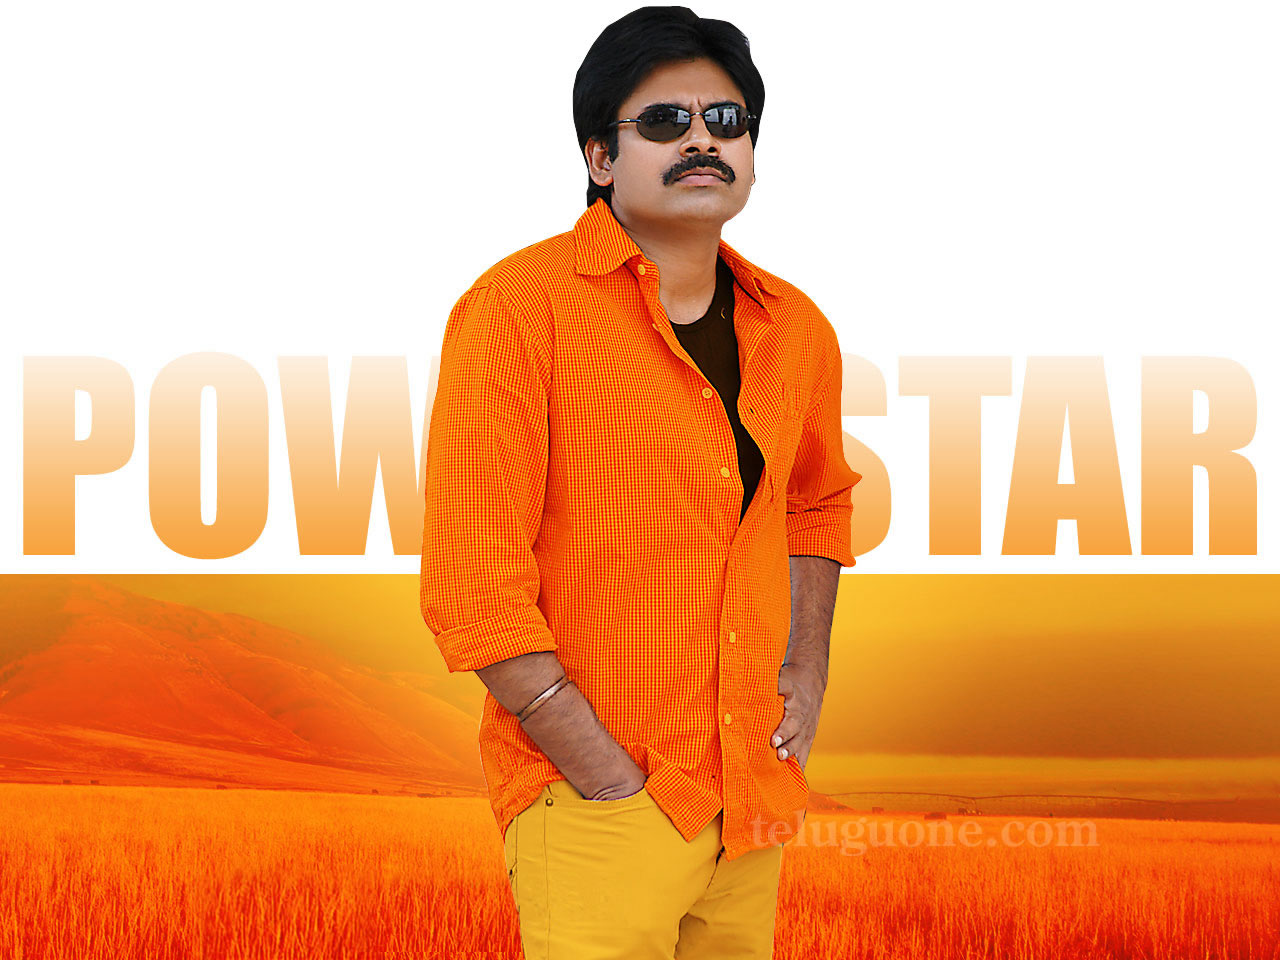 pawan kalyan: pawan kalyan hd wallpapers